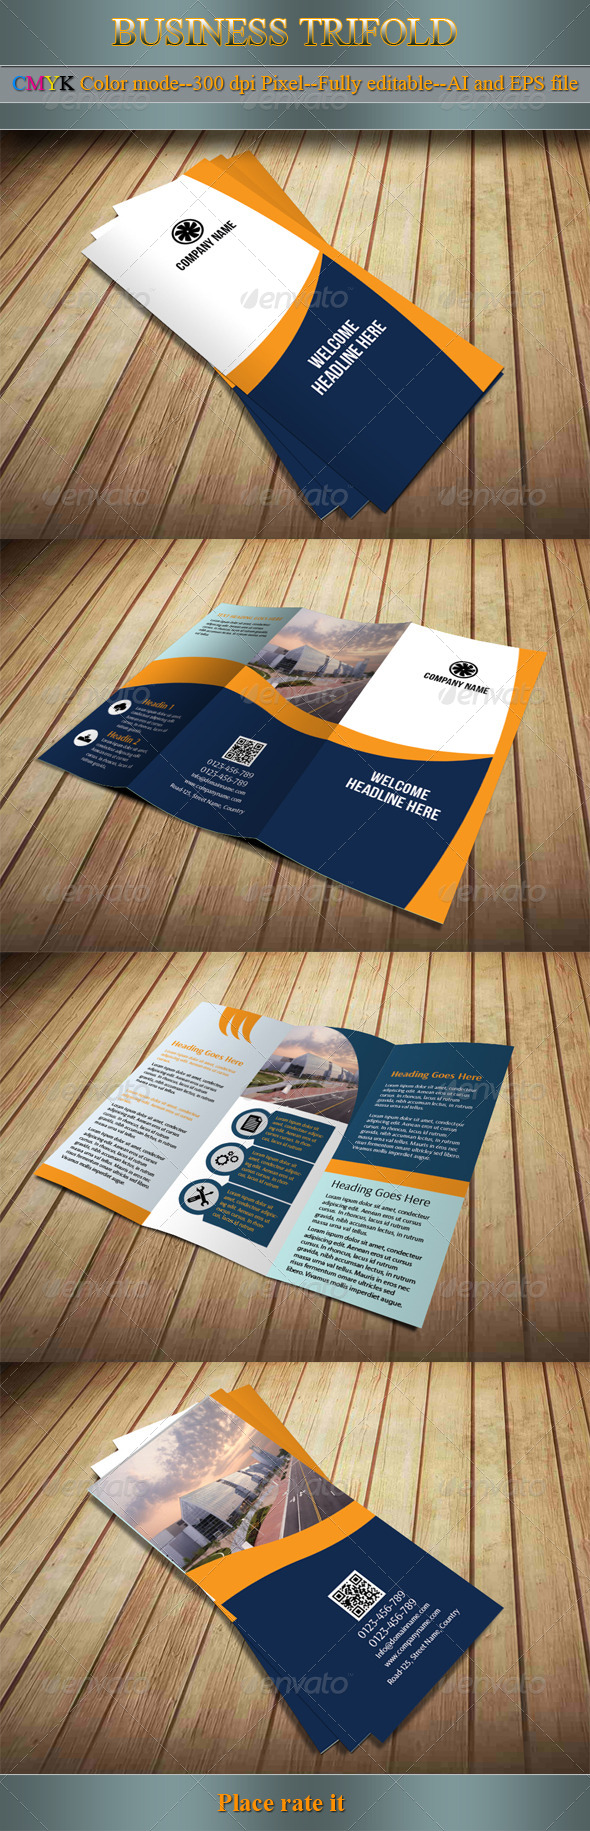 GraphicRiver Business Trifold 5593160